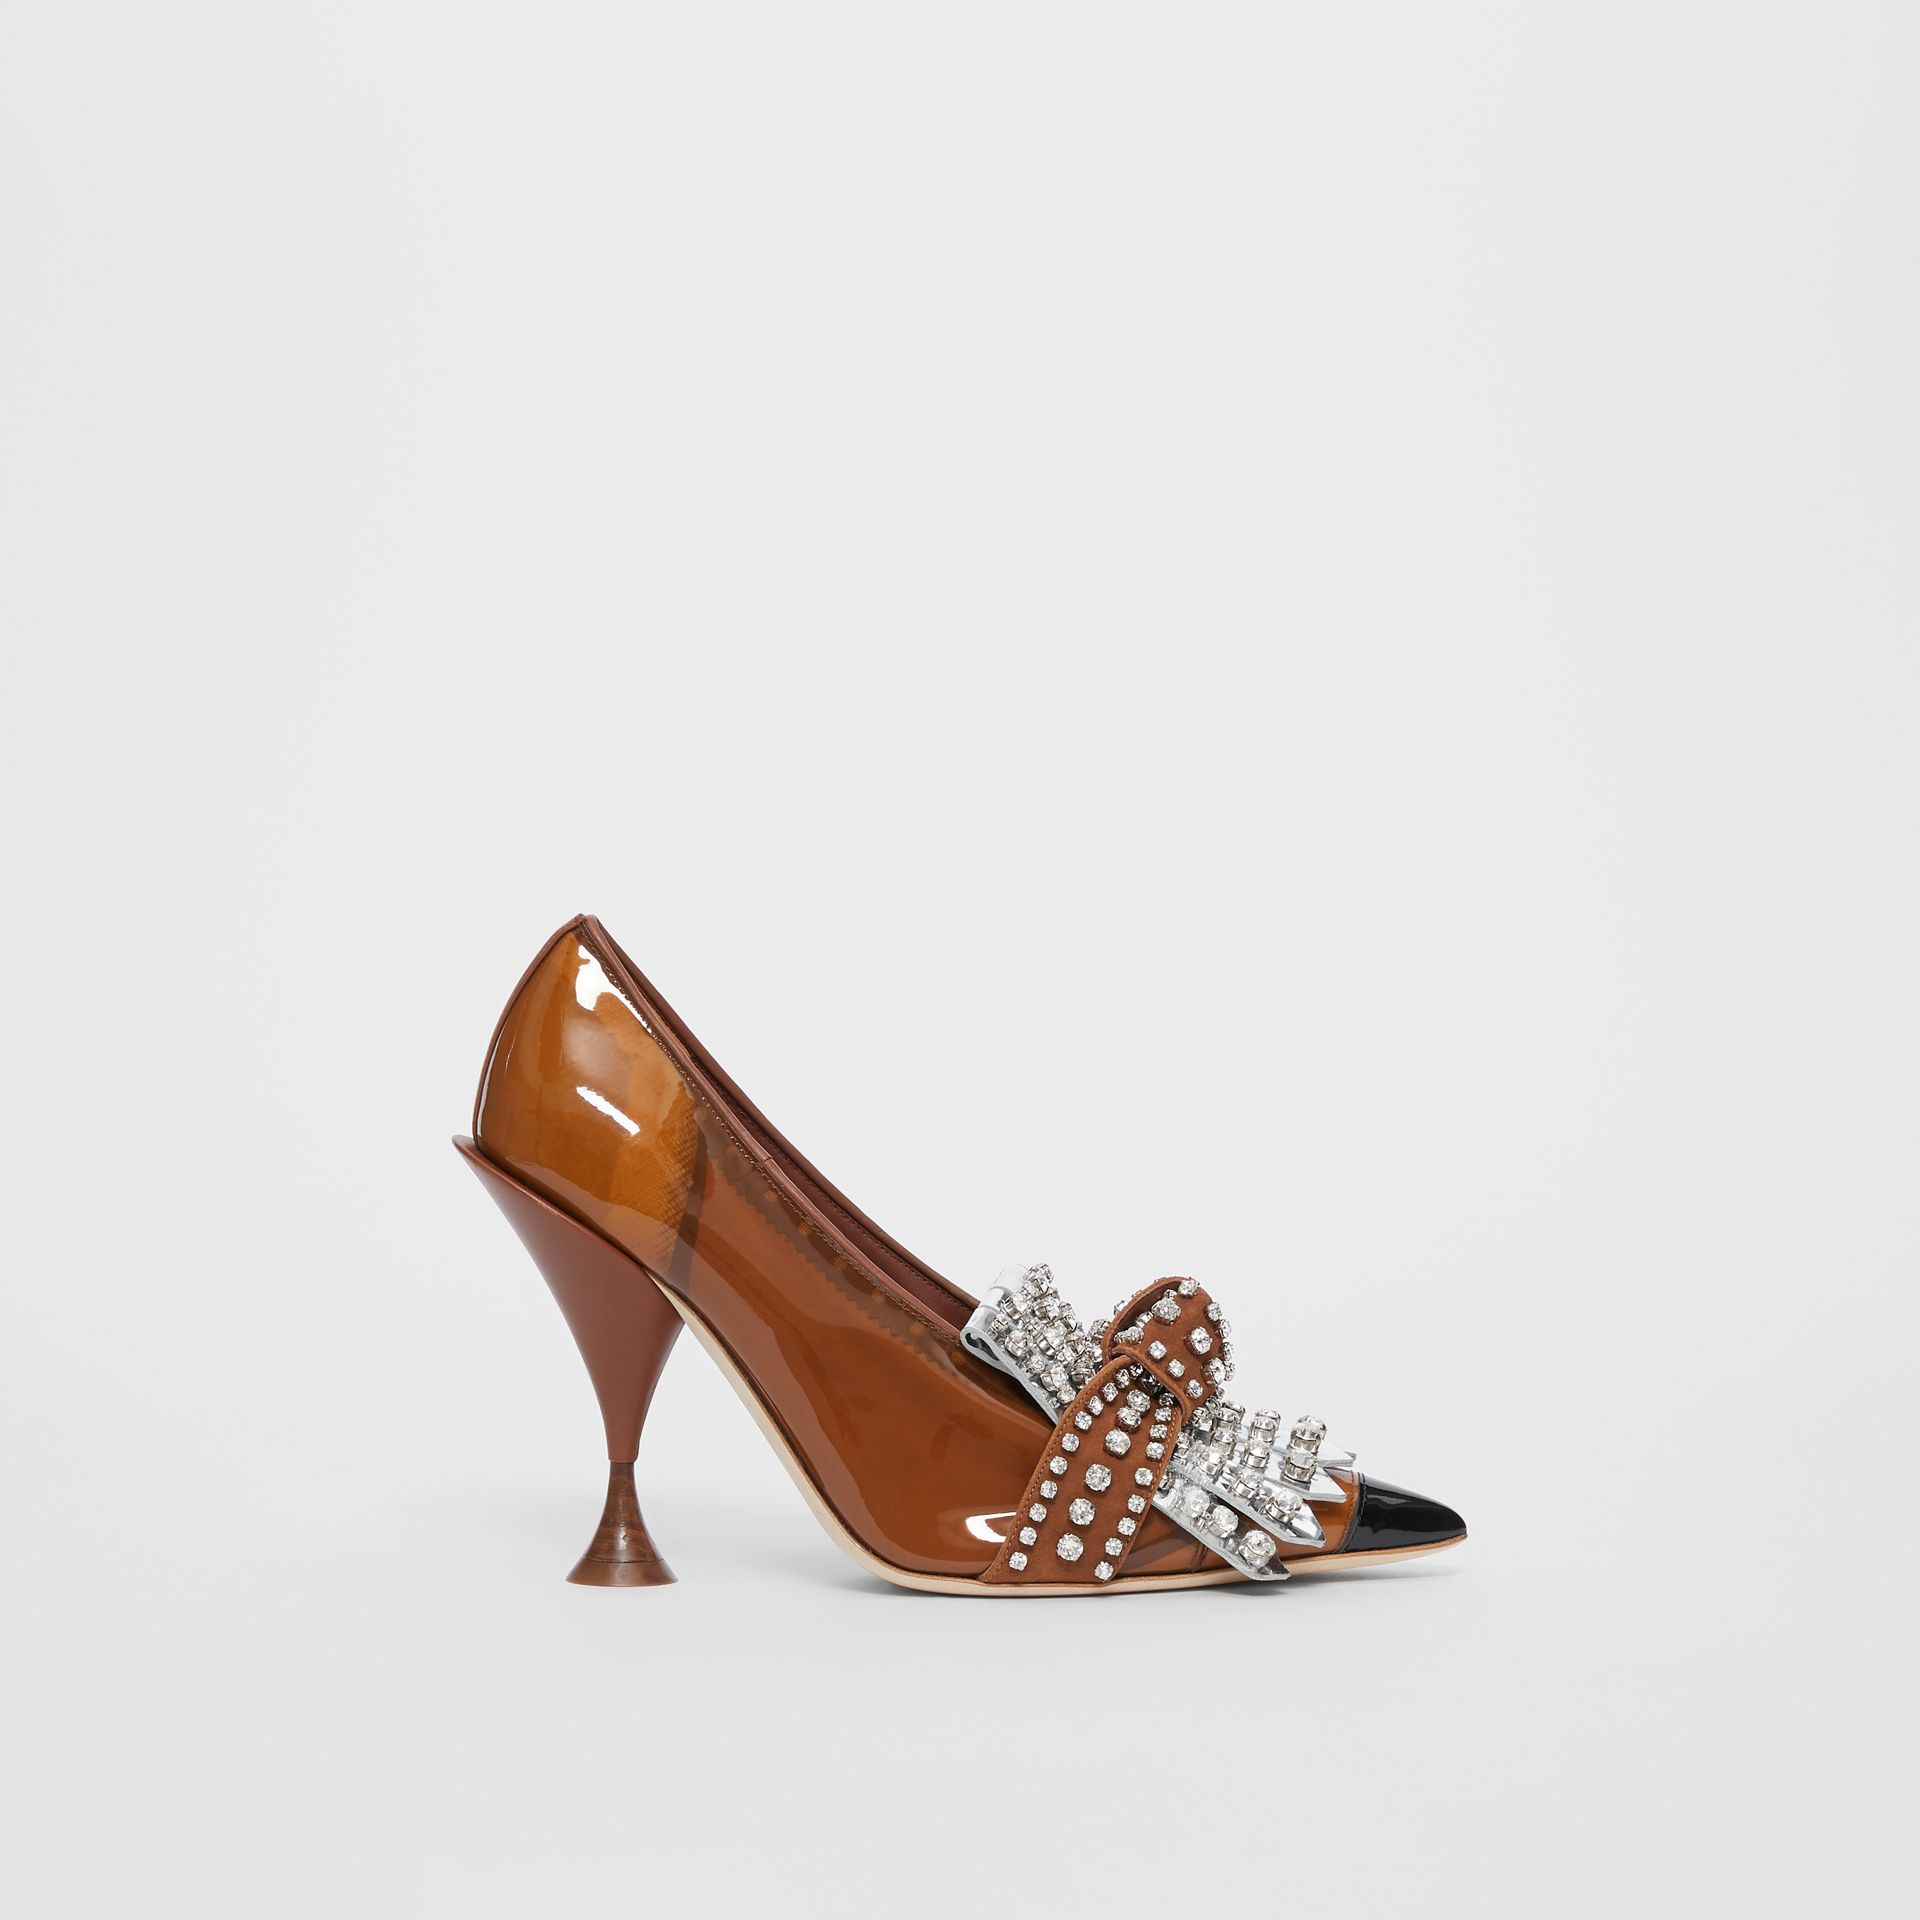 Crystal Kiltie Fringe Vinyl and Leather Point-toe Pumps in Malt Brown/black - Women | Burberry United States - gallery image 5